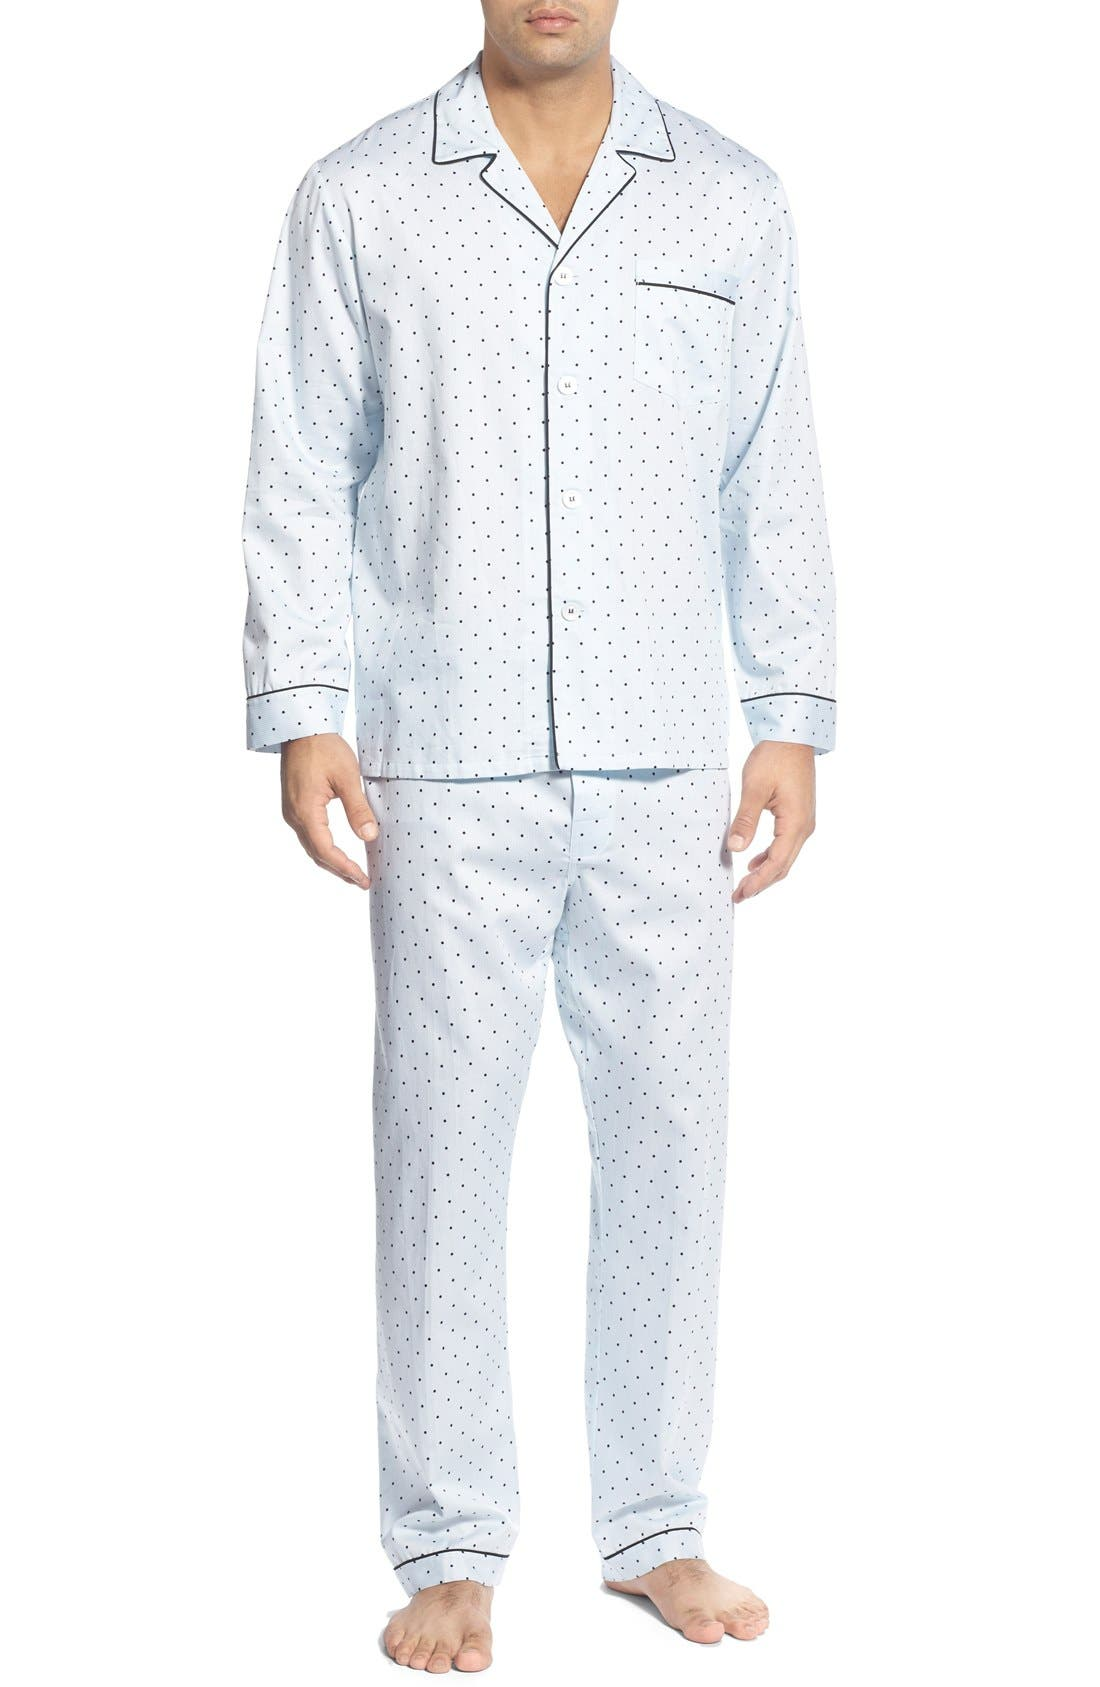 'Twilight' Cotton Pajamas,                         Main,                         color, Navy Dots